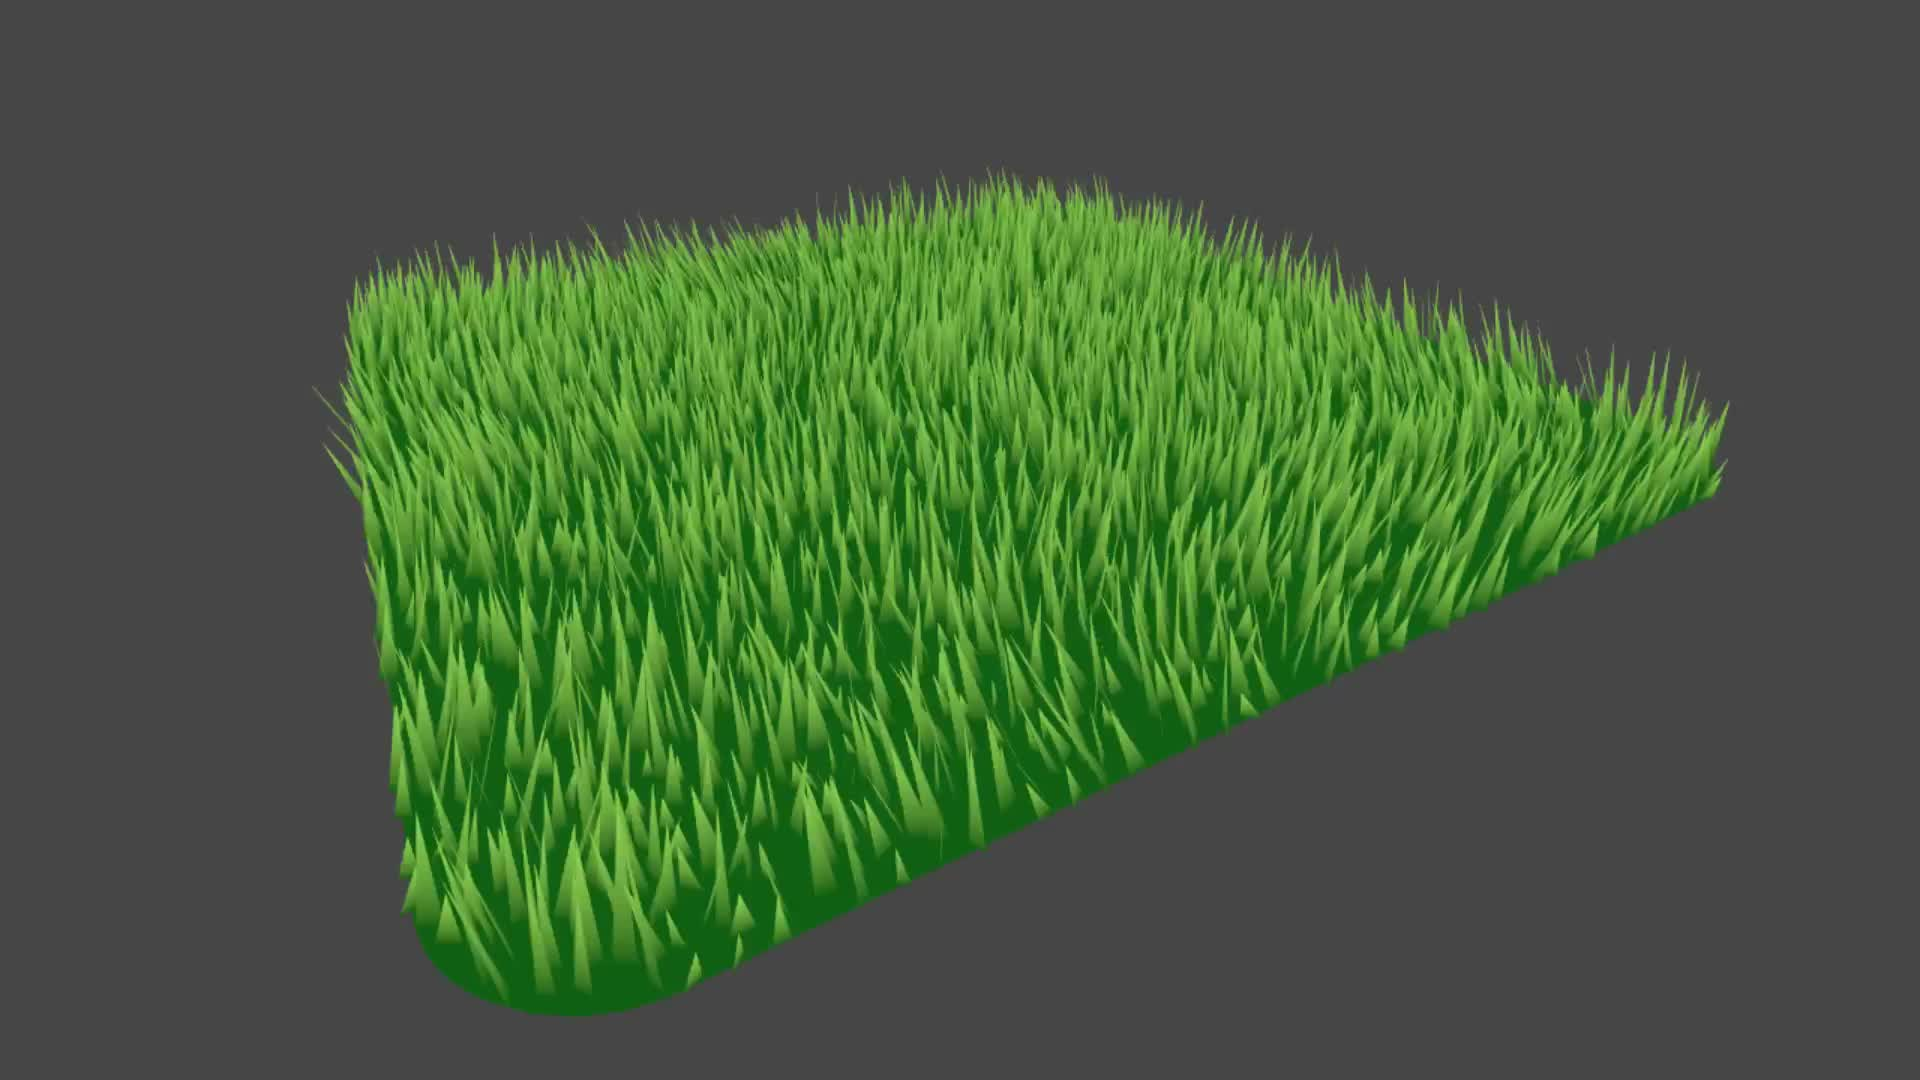 Unity Grass Shader Tutorial - Roystan